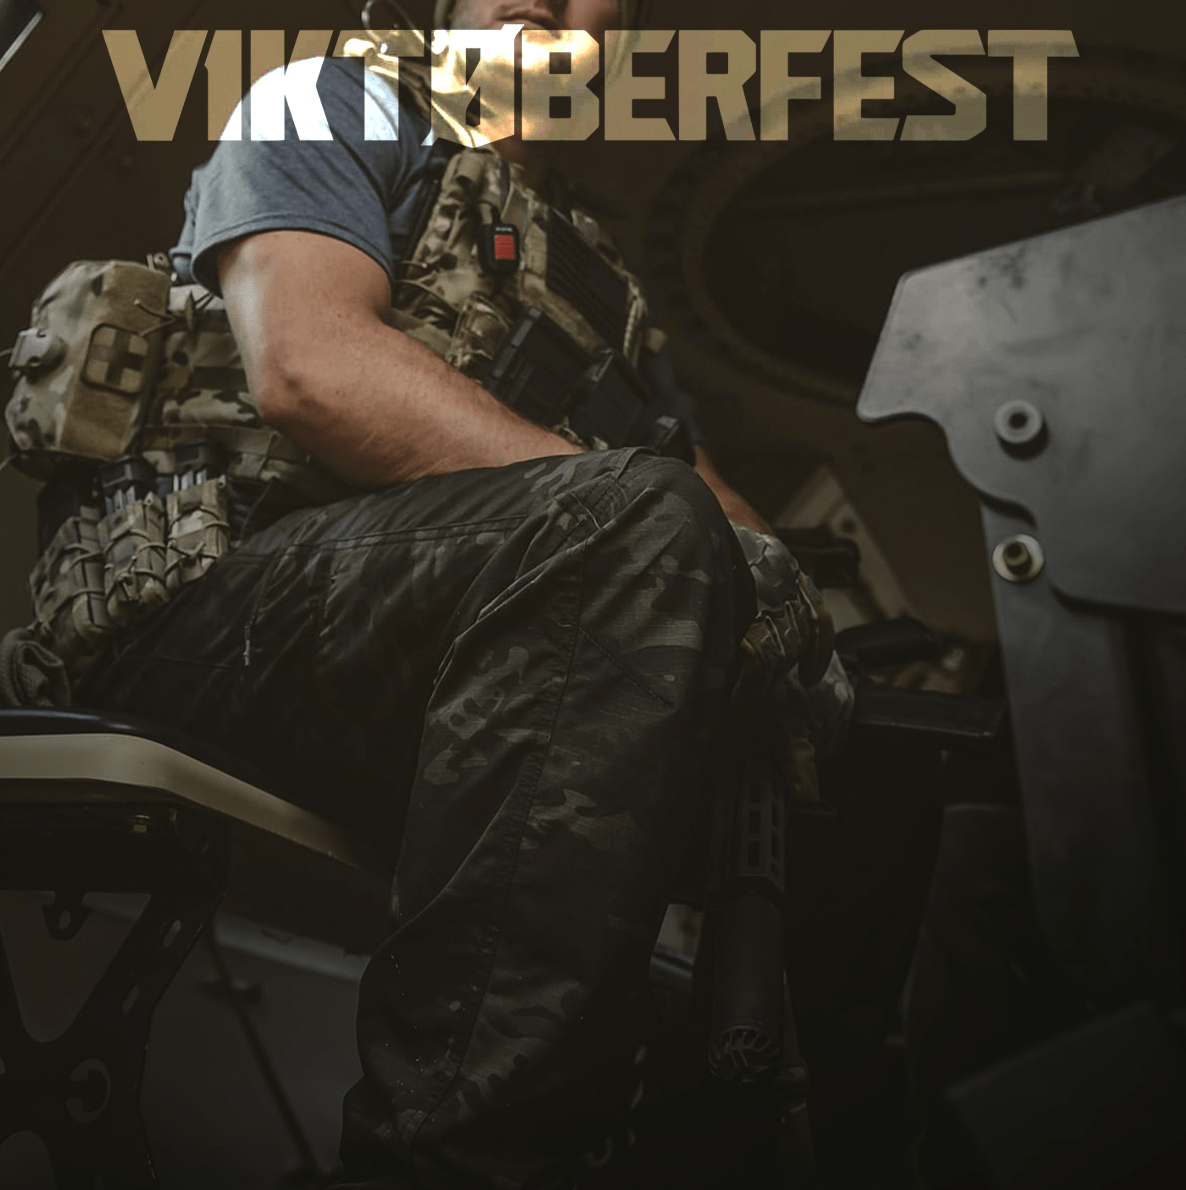 Viktos Contractor MC and AF Pants on Sale at uspatriottactical.com